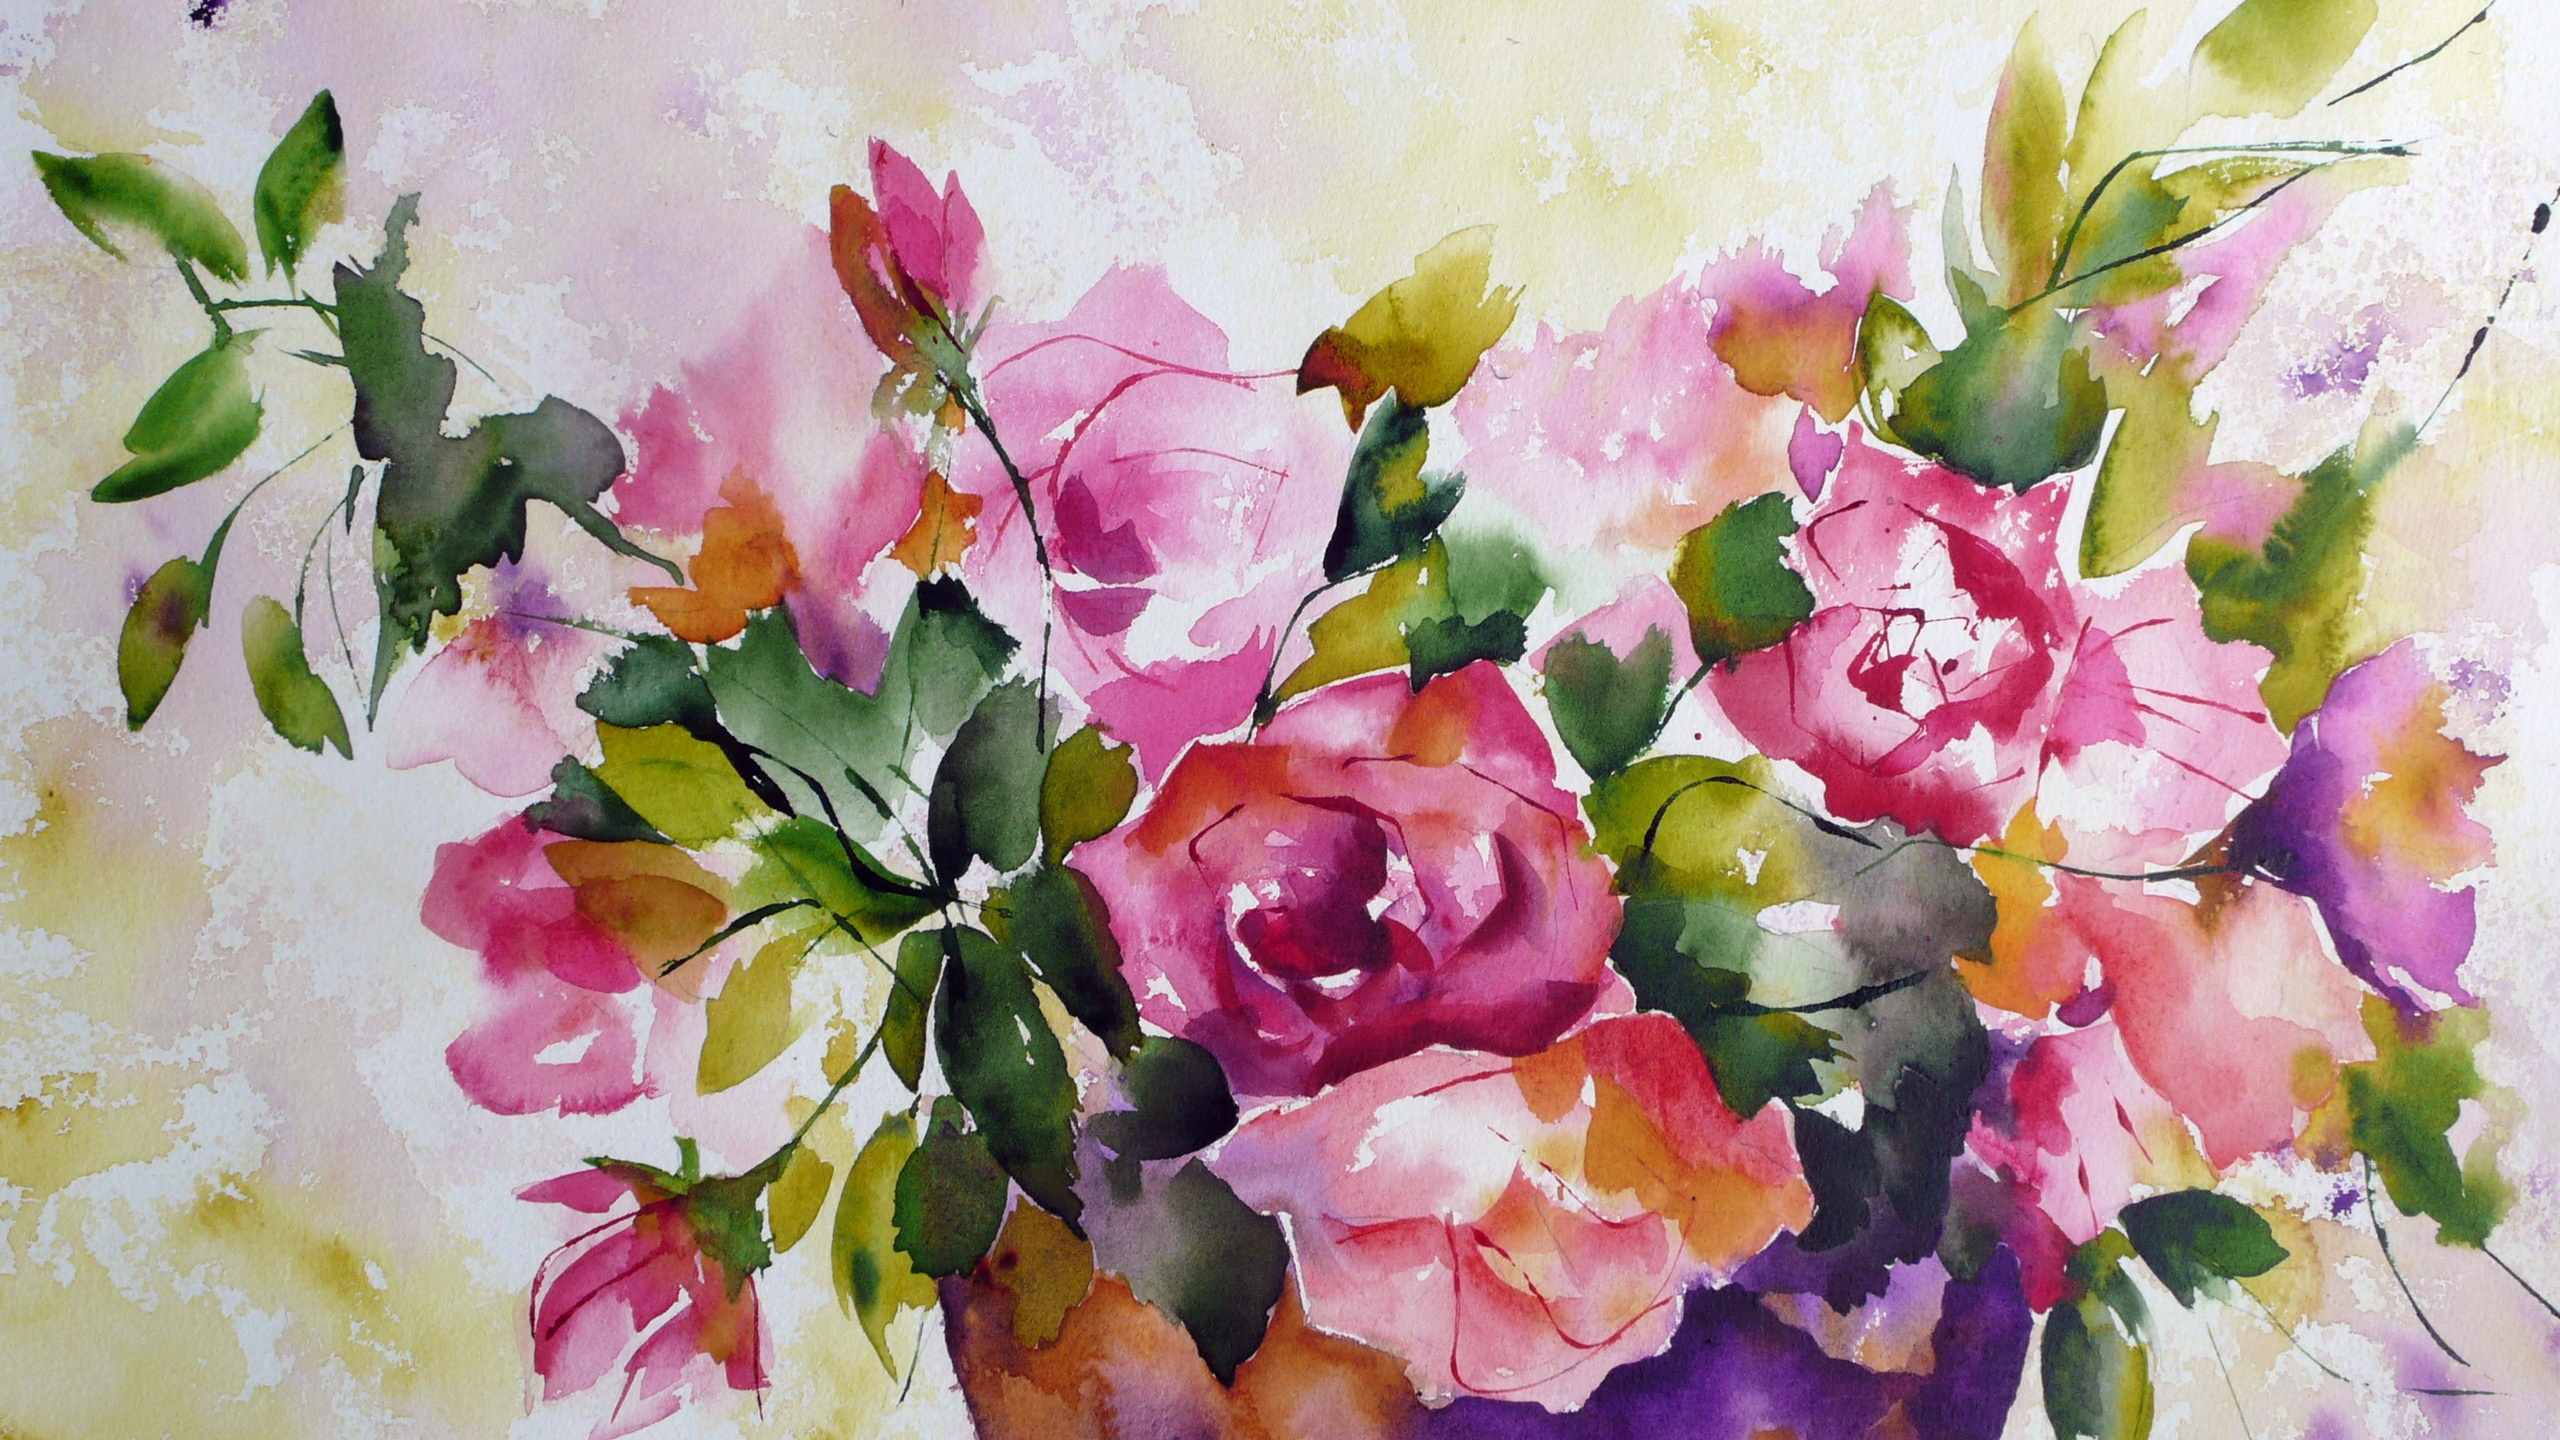 download wallpaper 2560x1440 watercolor painting of